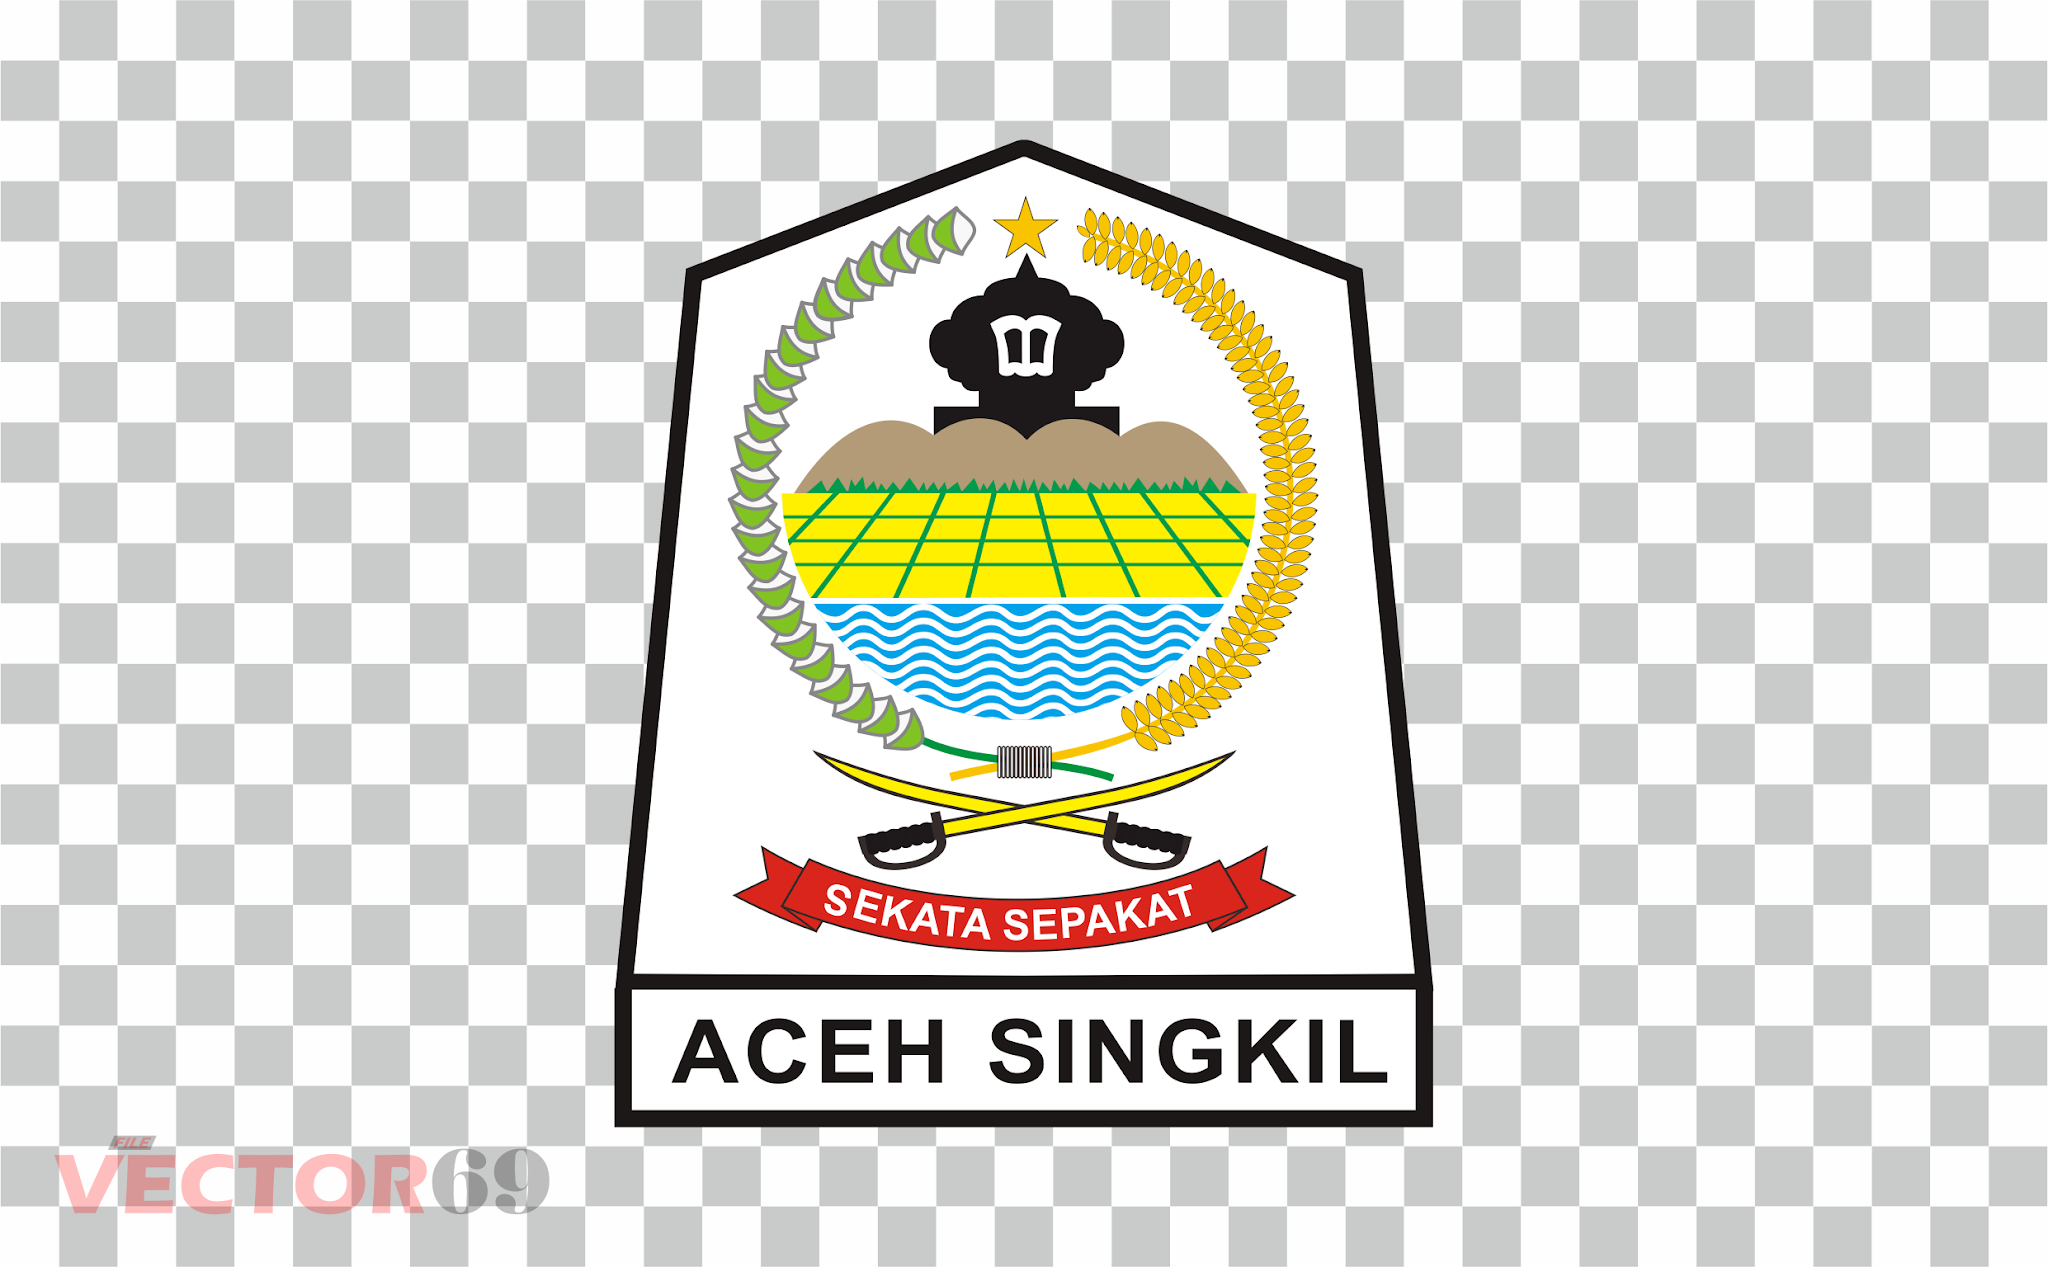 Kabupaten Aceh Singkil Logo - Download Vector File PNG (Portable Network Graphics)